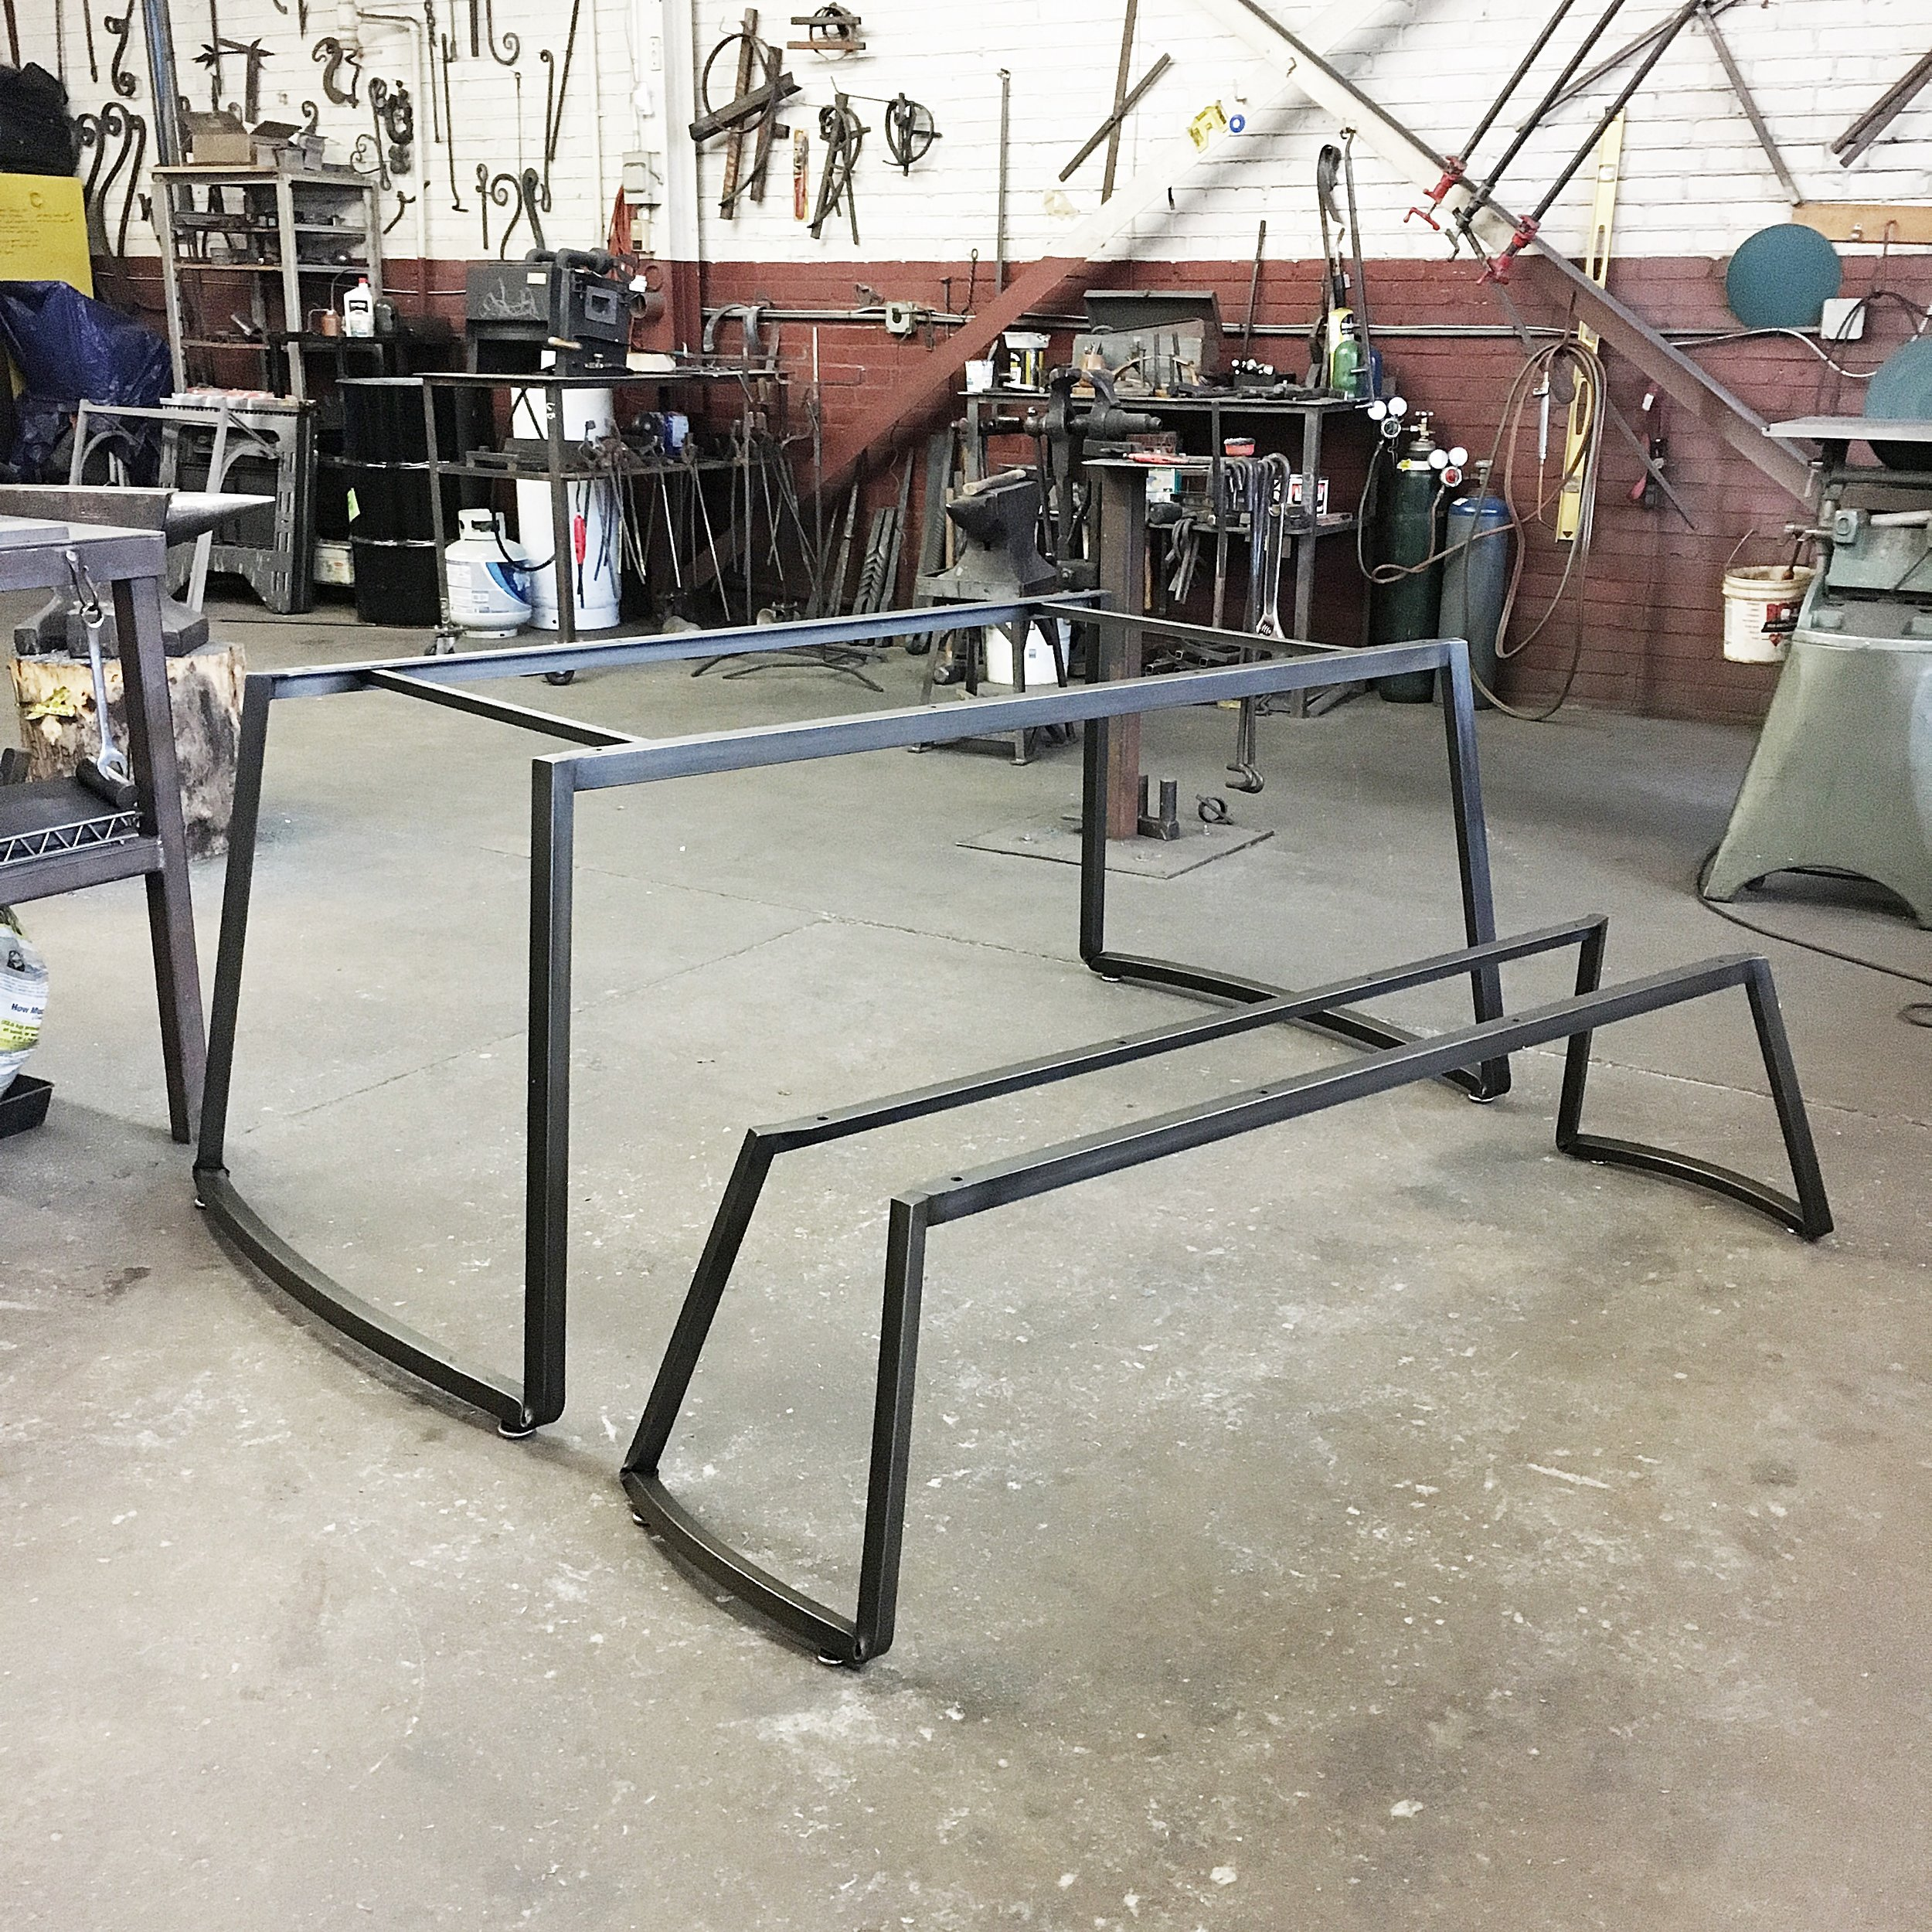 Table and bench bases